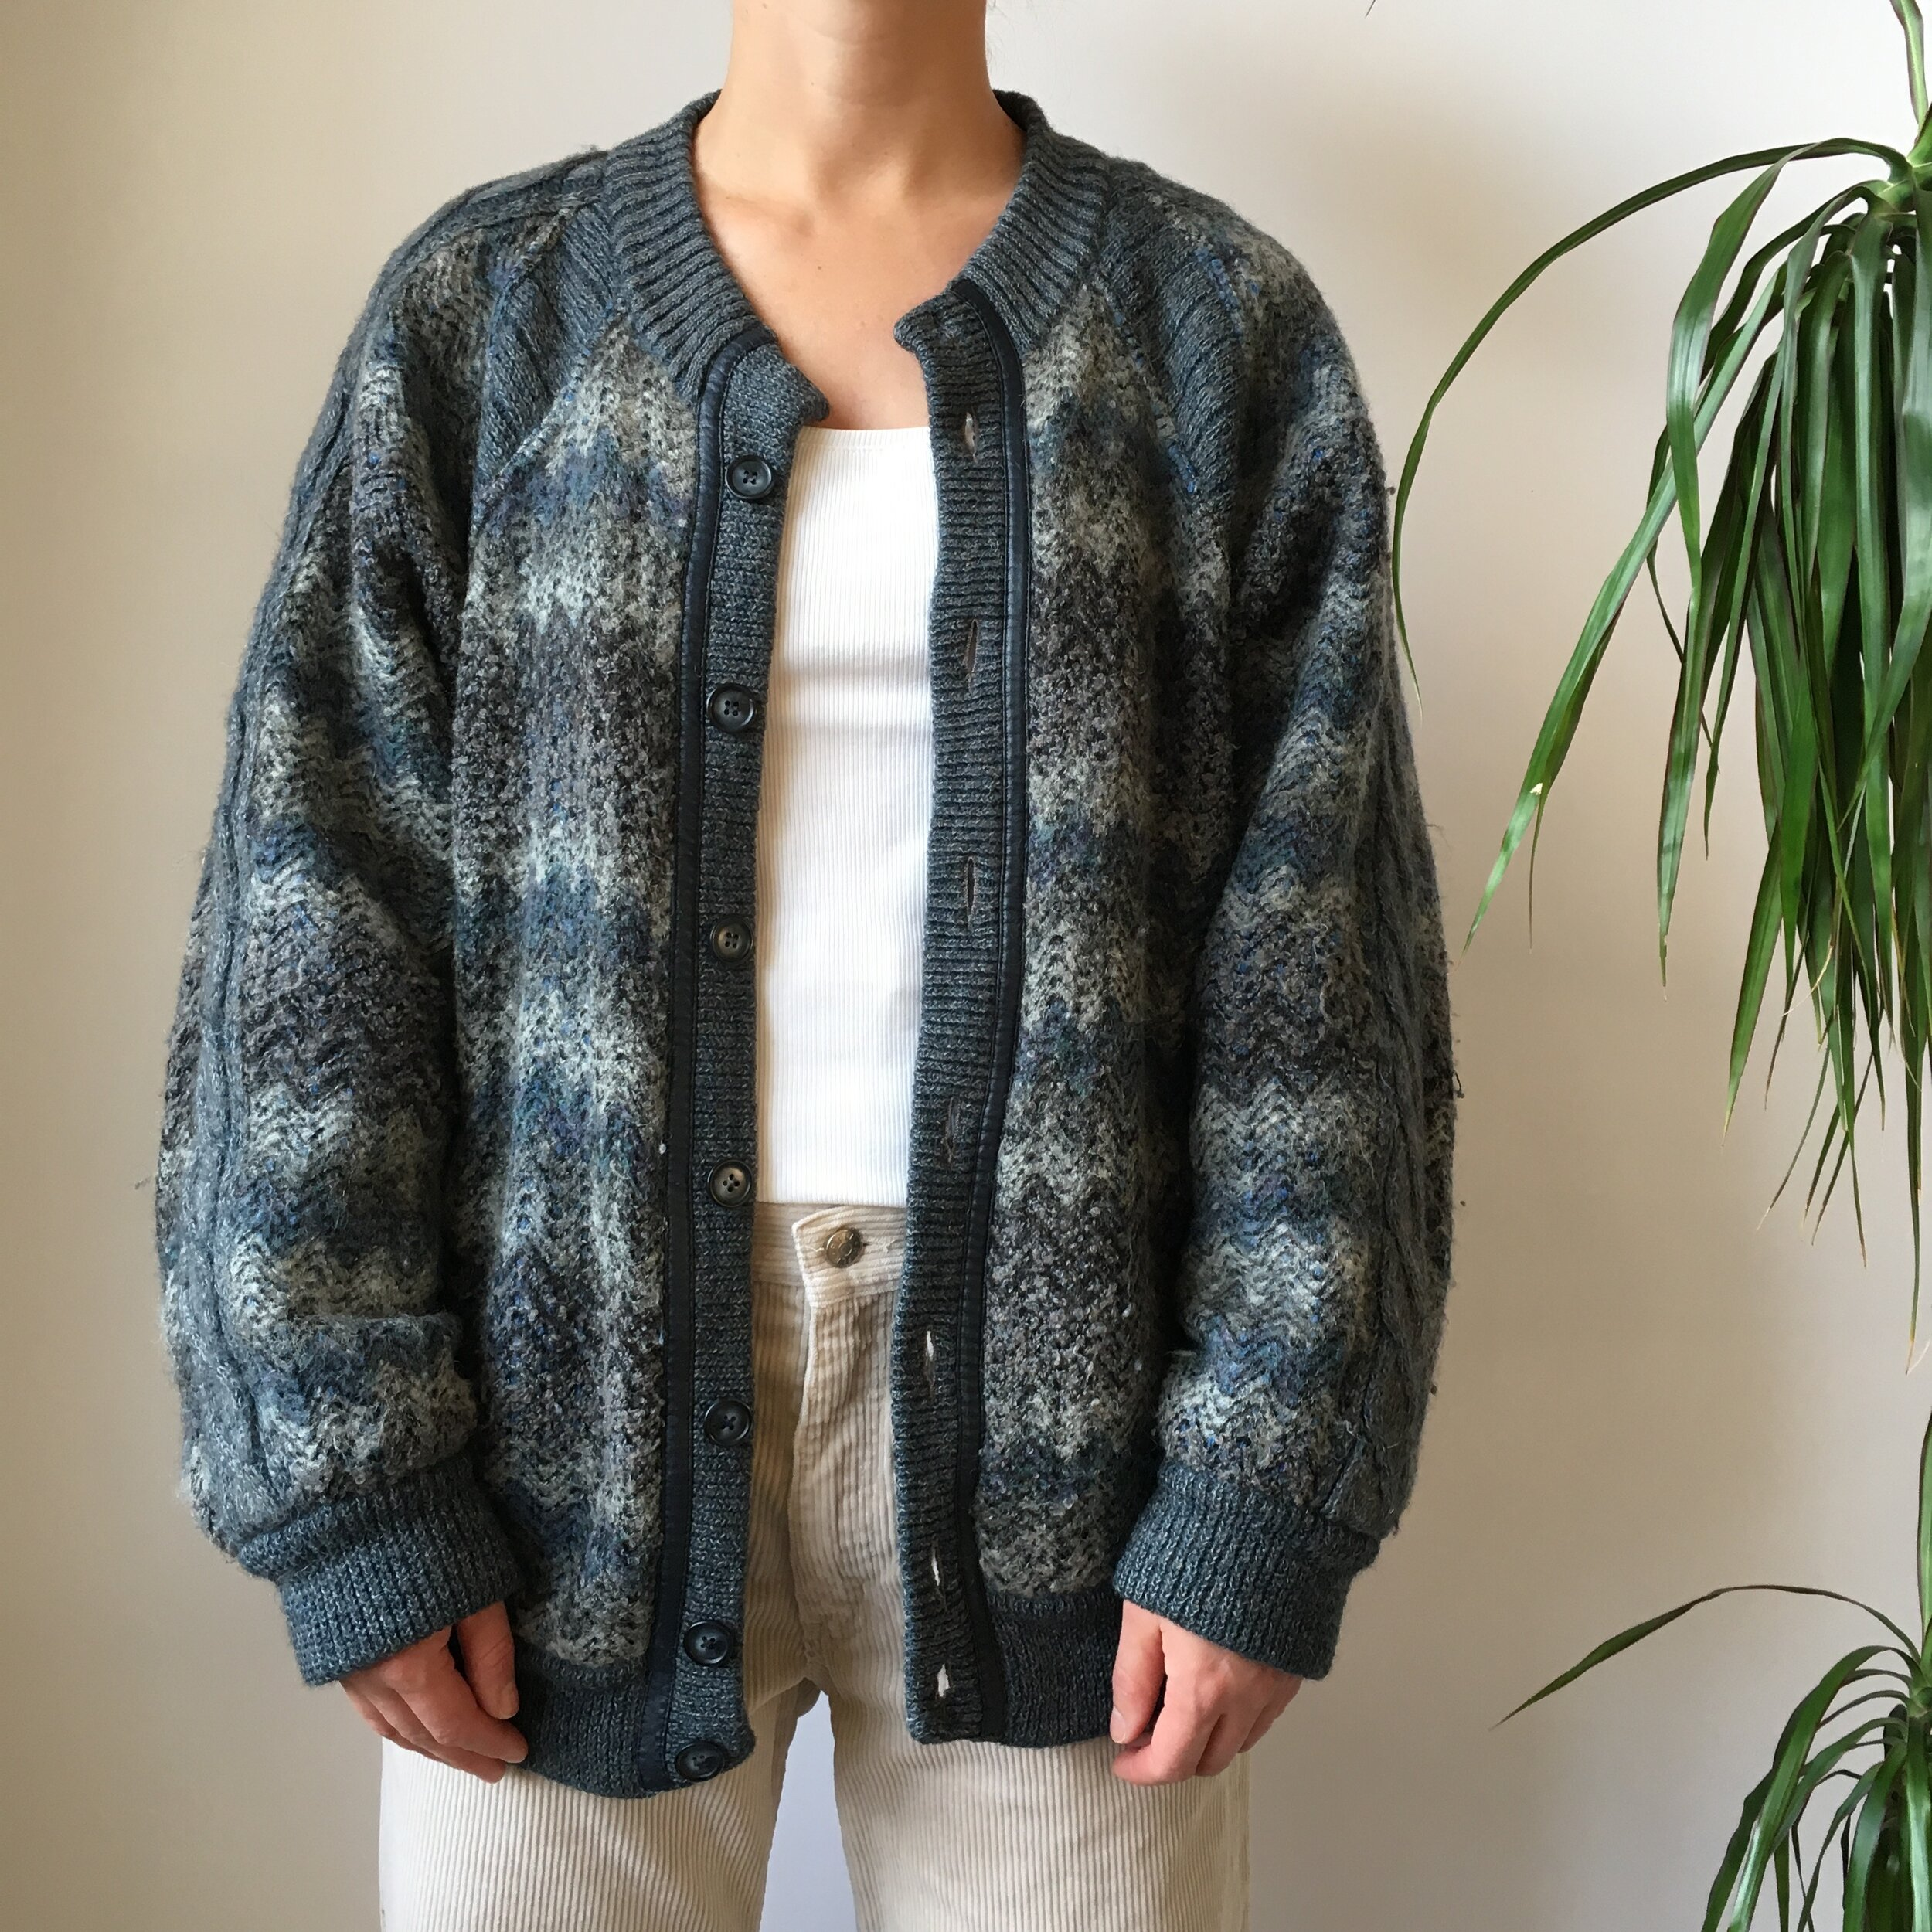 French vintage bed jacket mohair wool blend sweater night cardi gift warm ecru gift for the bride Mad Men style handmade in France 1960s NOS